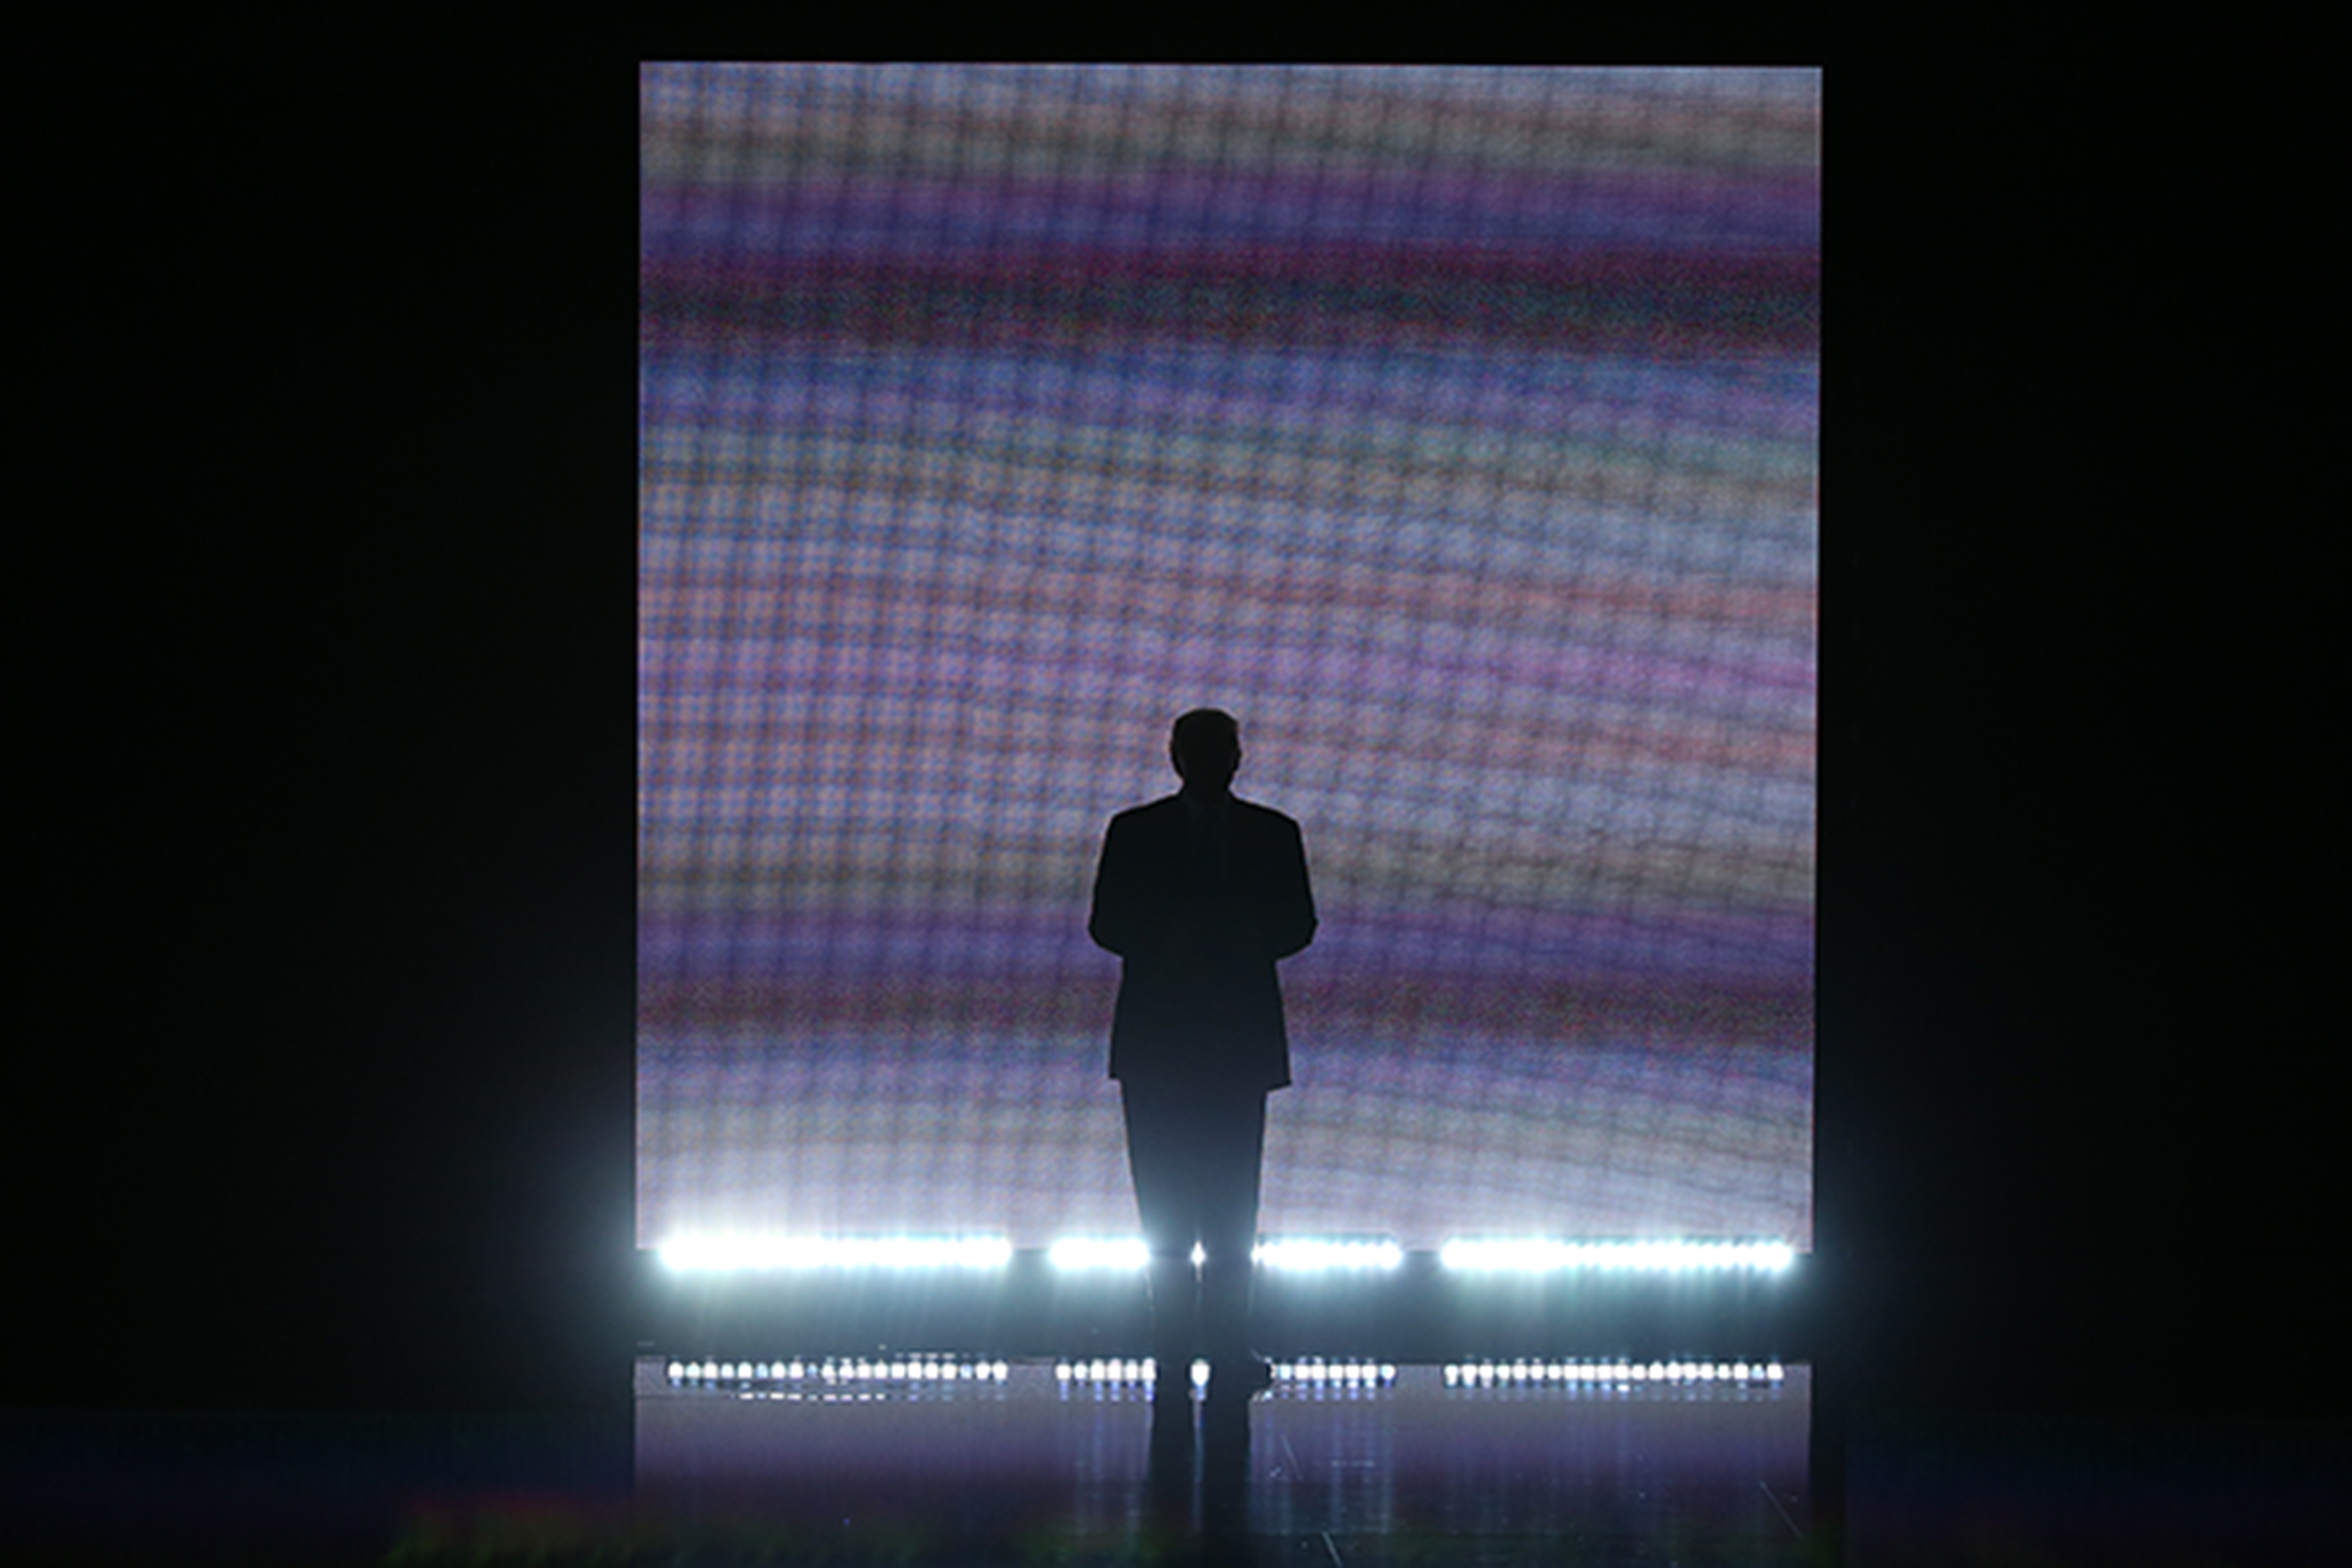 Donald Trump makes an entrance on stage during the Republican National Convention in Cleveland. (David Paul Morris/Bloomberg)